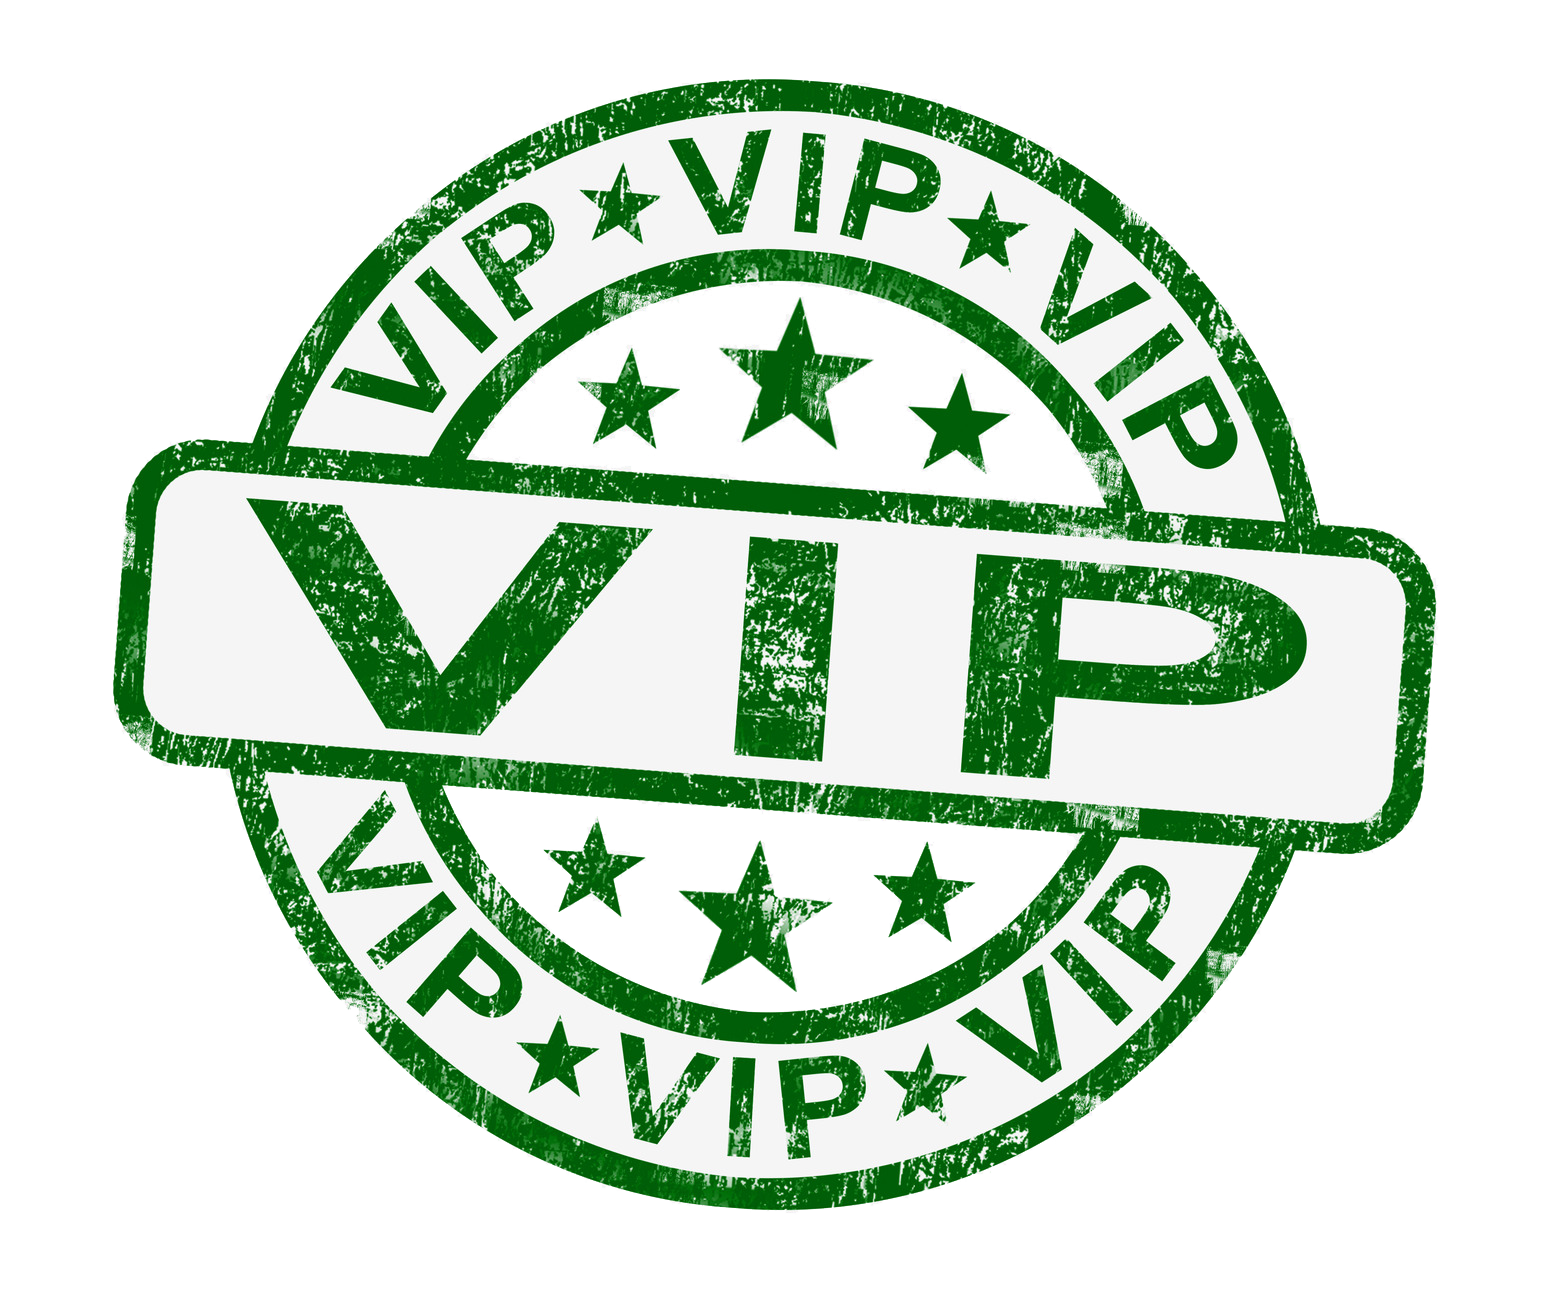 Are you one of our VIPs?